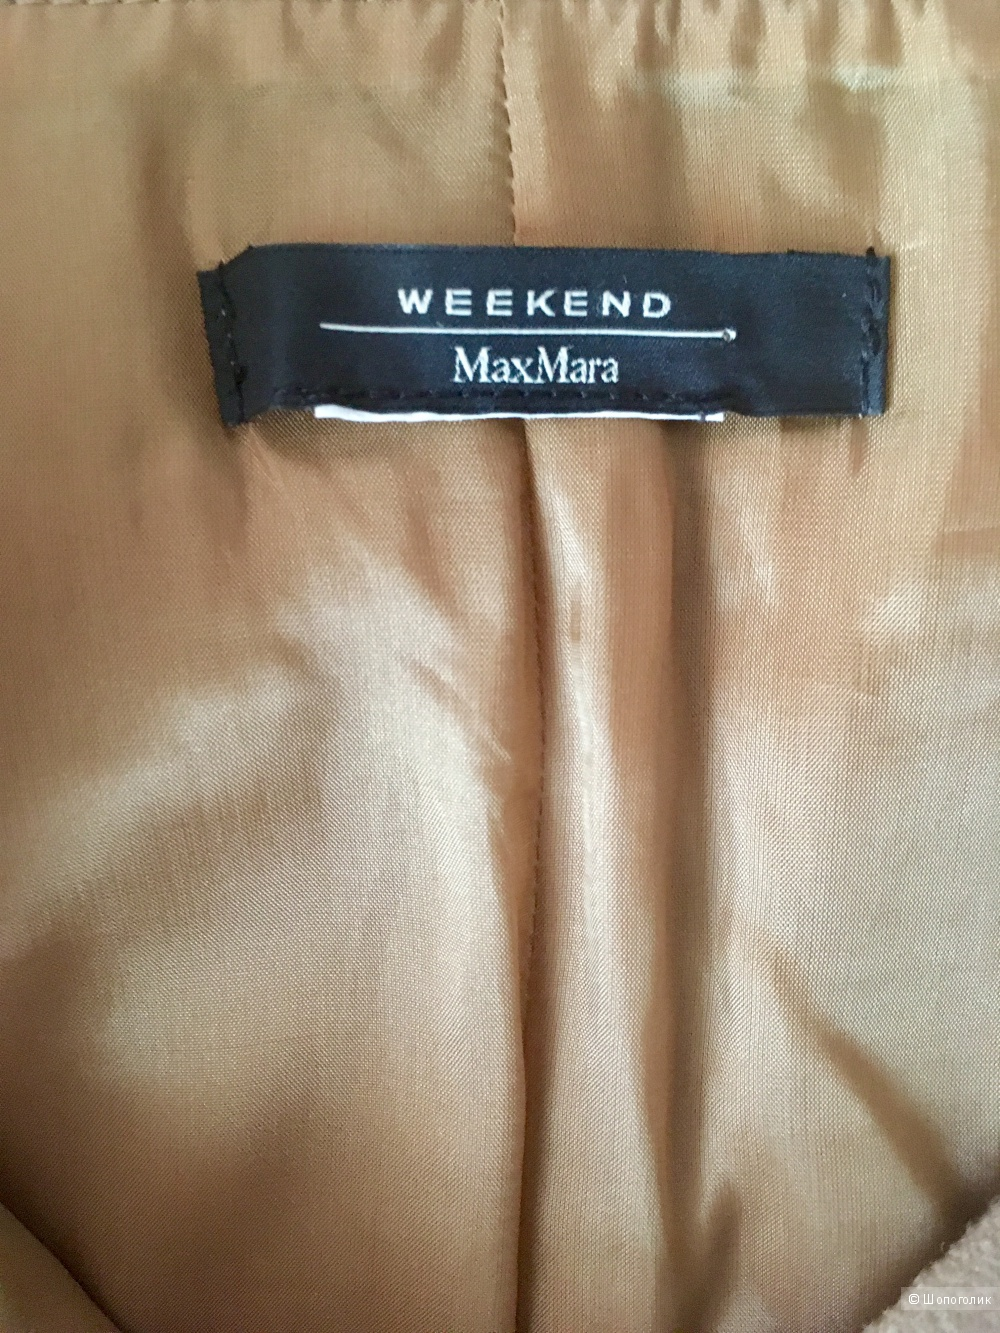 Юбка Max Mara Weekend, М, 44-46 размер